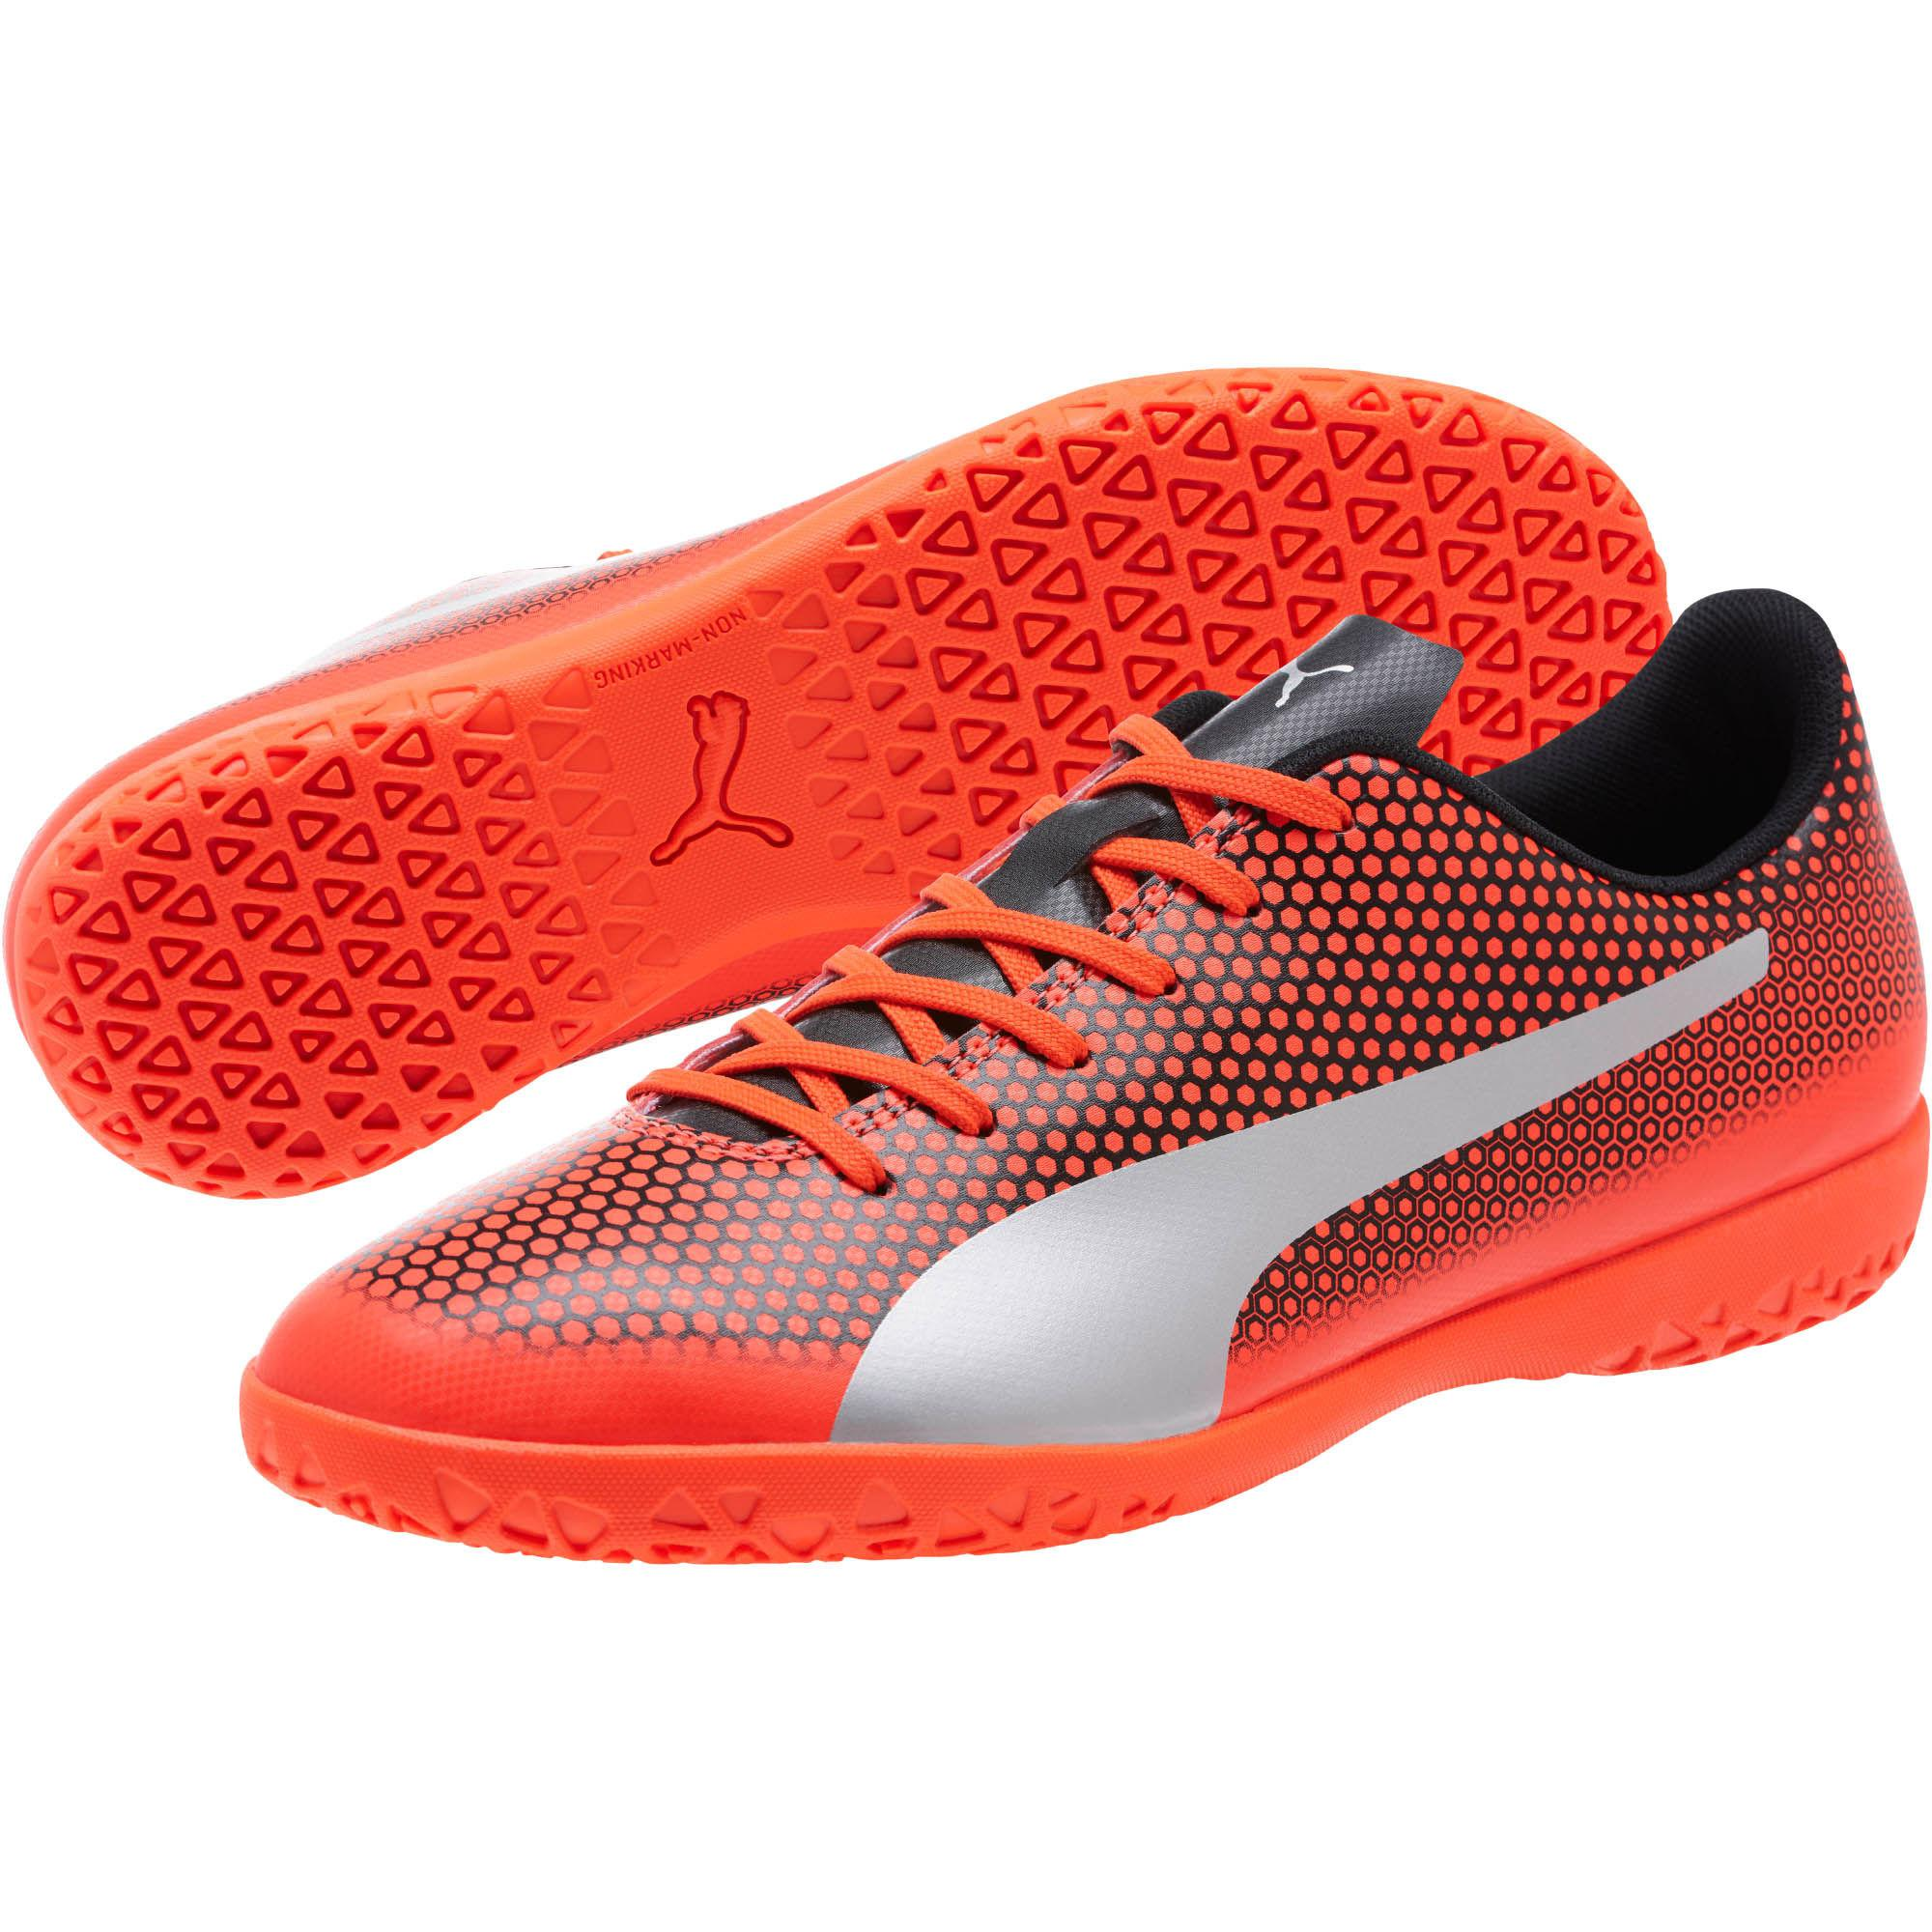 fcc665519b82 Lyst - PUMA Spirit It Indoor Soccer Shoes in Red for Men